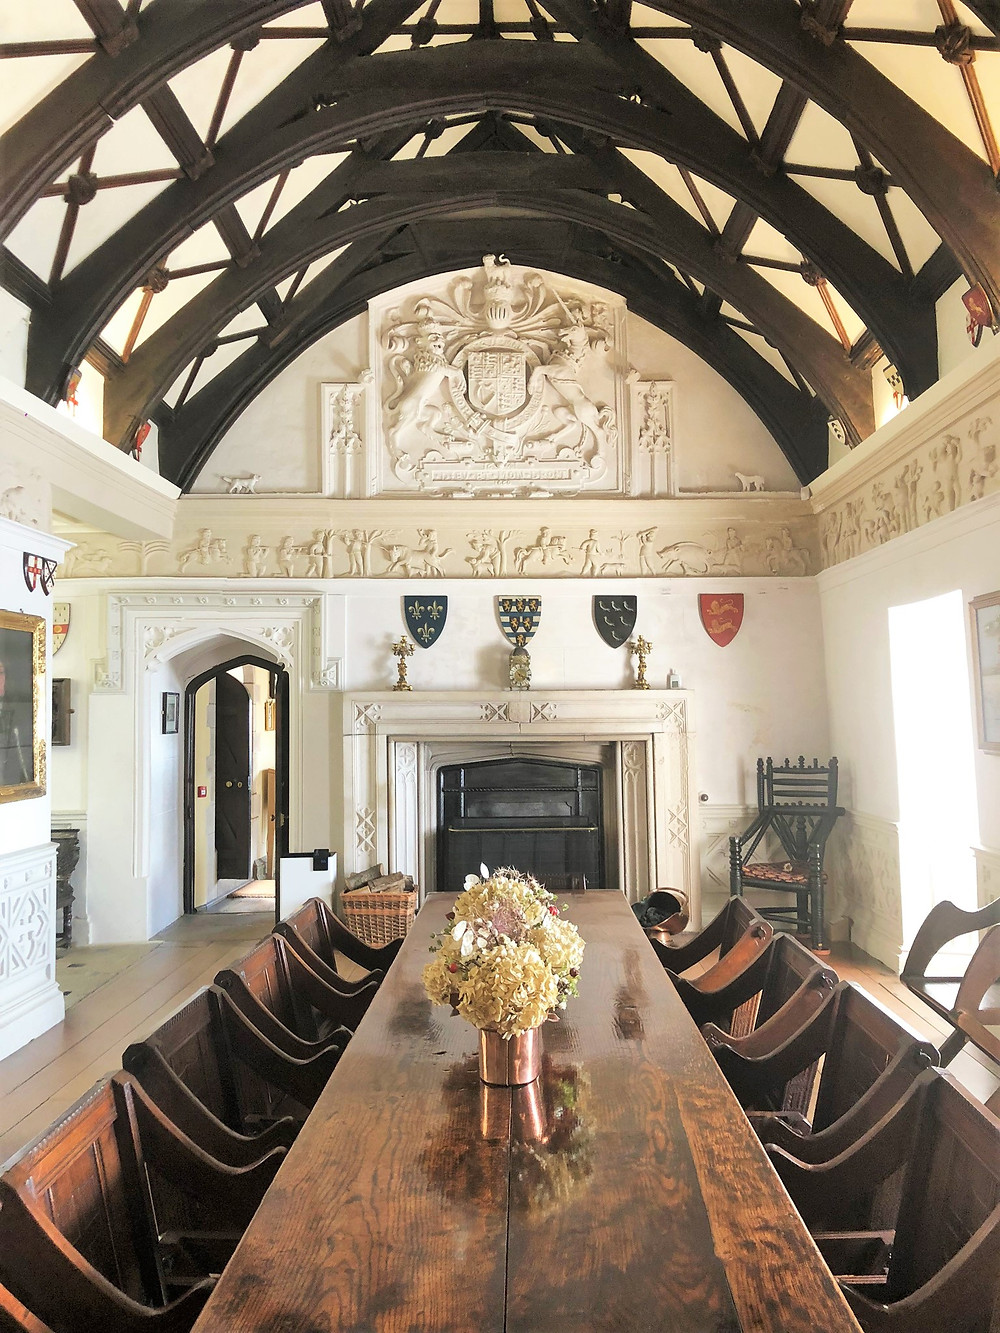 The Tudor Great Hall in St Michael's Mount castle. An oak table with monastic chairs makes for an imposing effect.